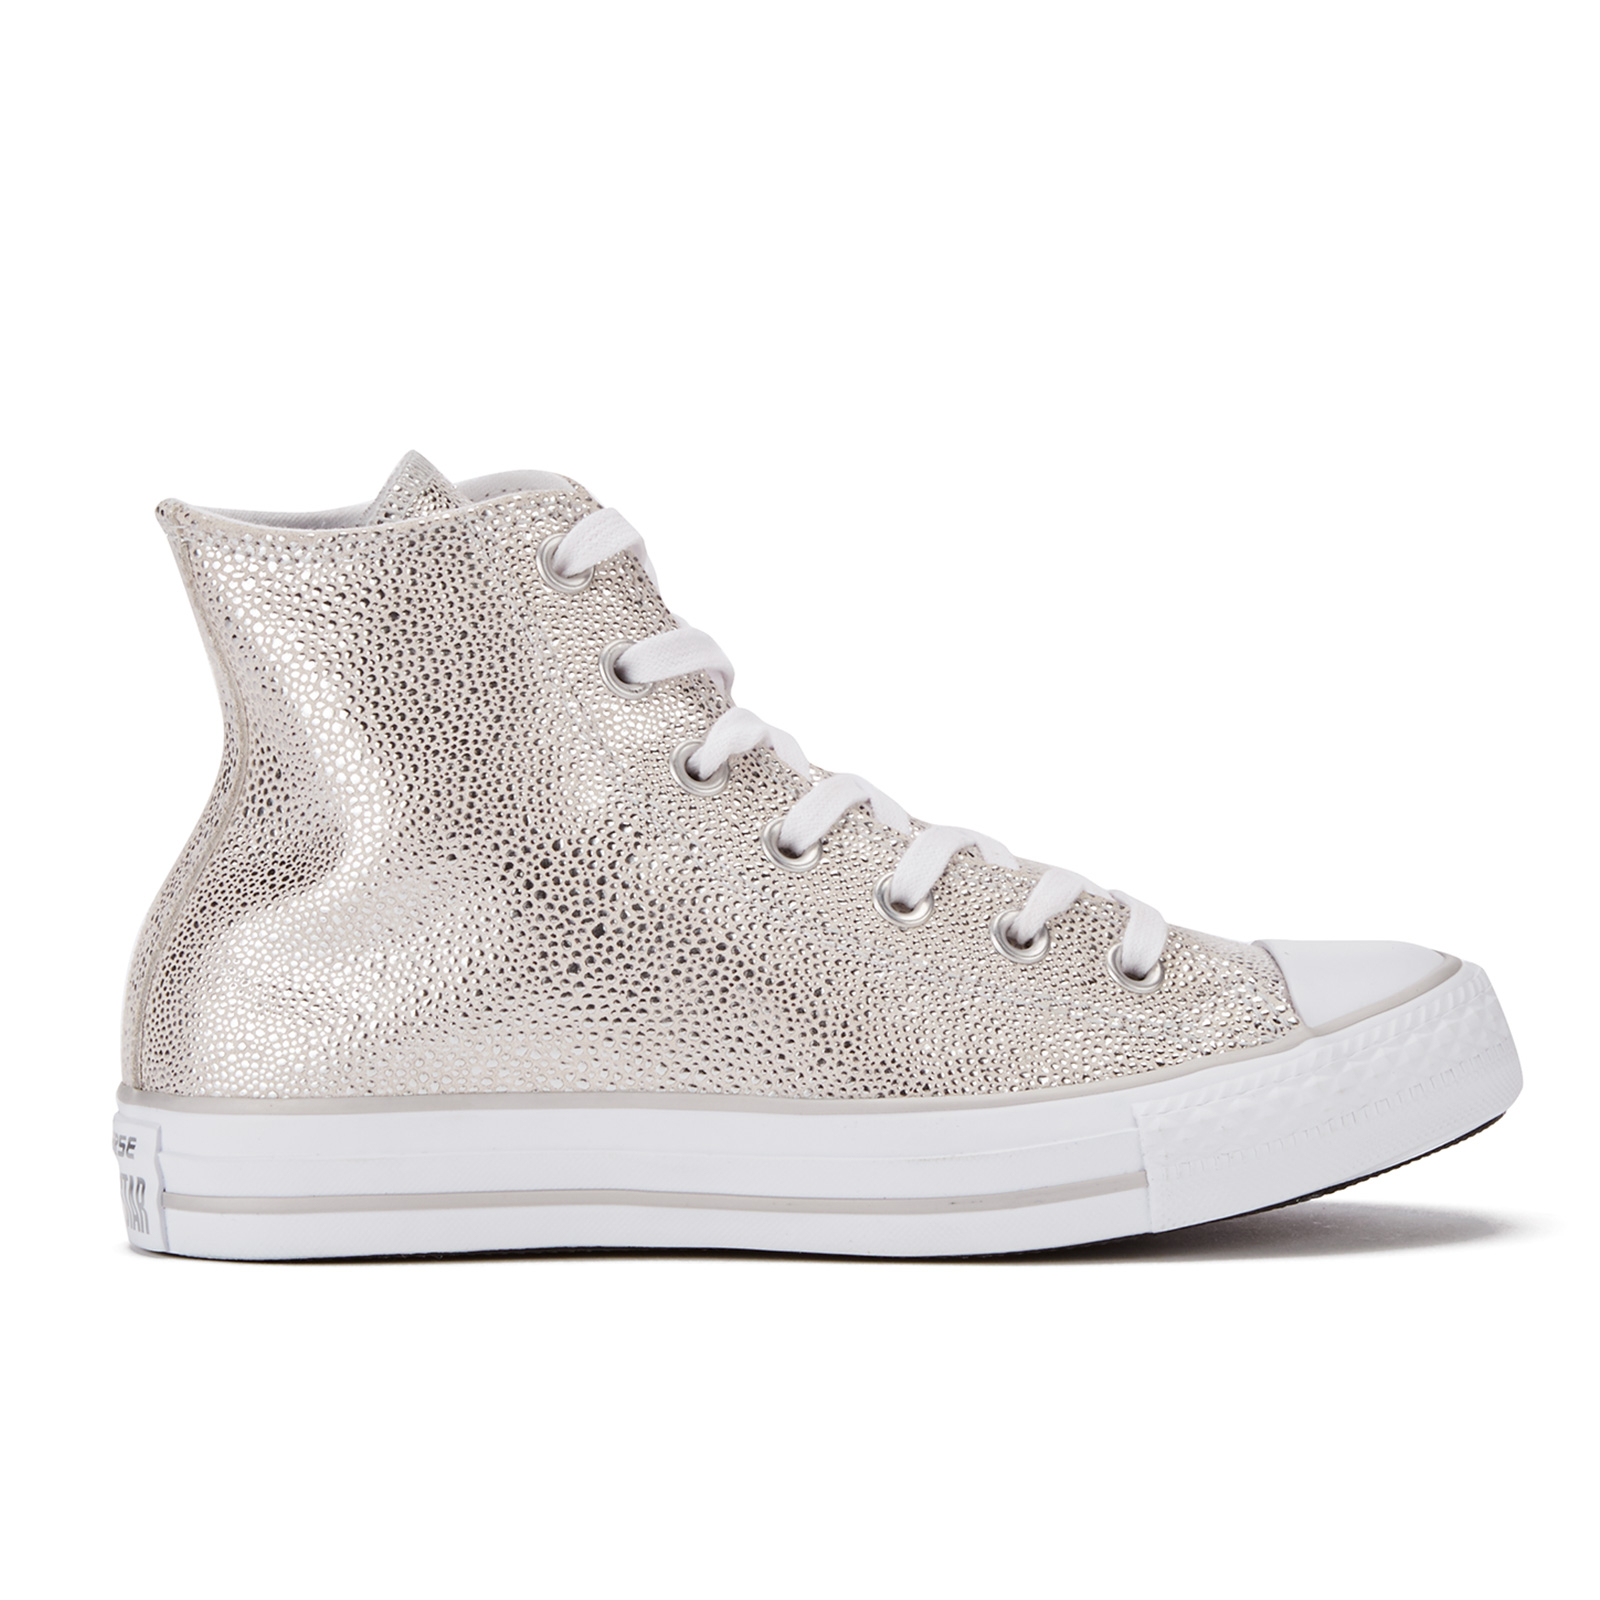 4f532646cd56 Converse Women s Chuck Taylor All Star Sting Ray Leather Hi-Top Trainers - Pure  Silver Black White - Free UK Delivery over £50